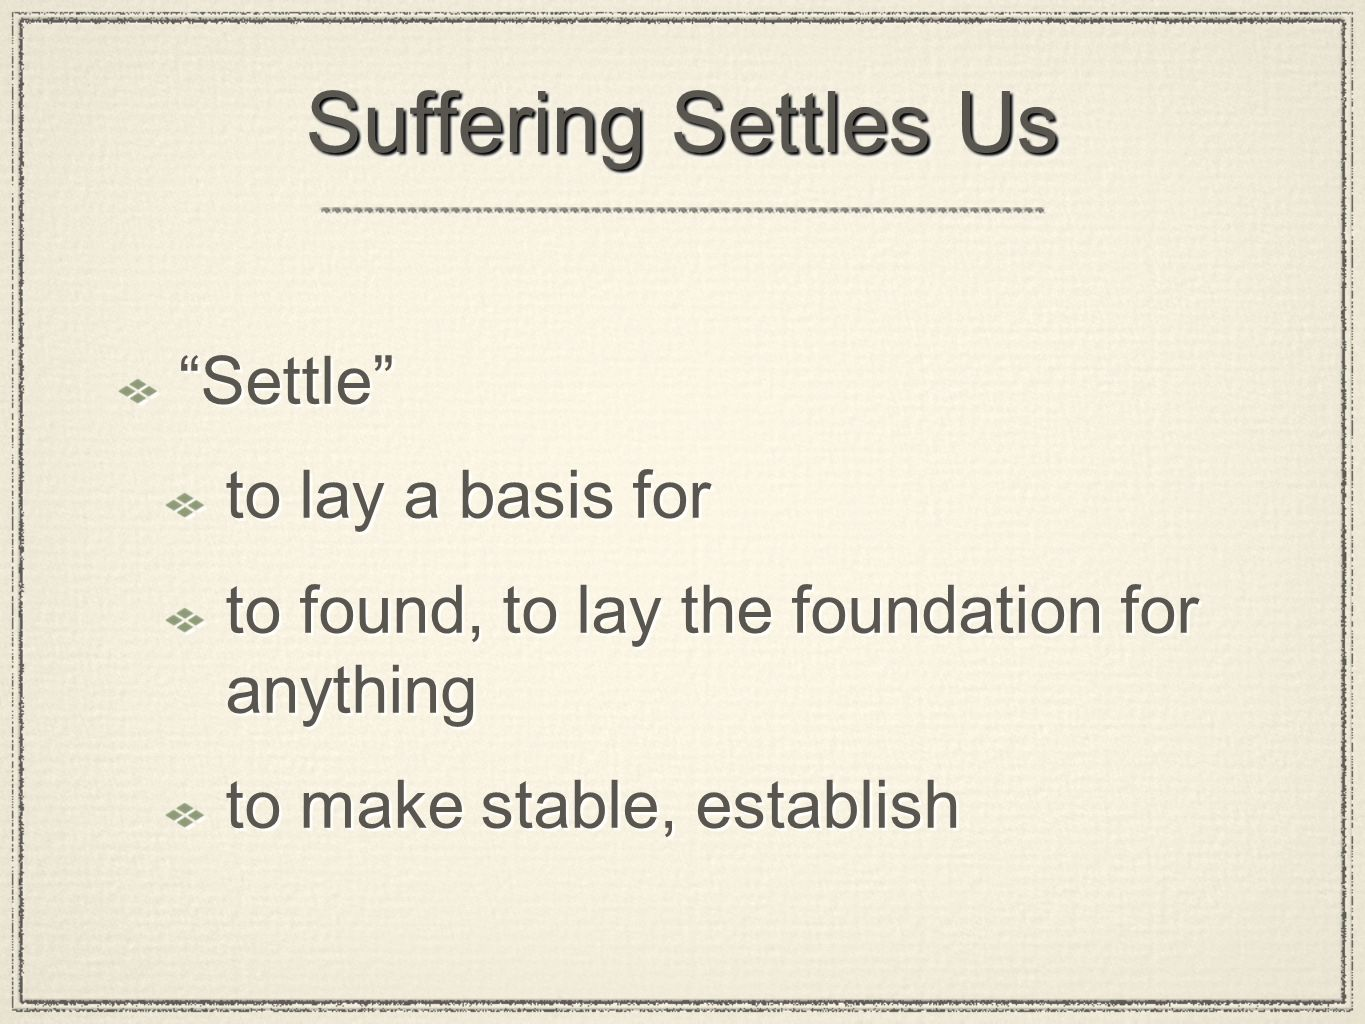 Suffering Settles Us Settle to lay a basis for to found, to lay the foundation for anything to make stable, establish Settle to lay a basis for to found, to lay the foundation for anything to make stable, establish